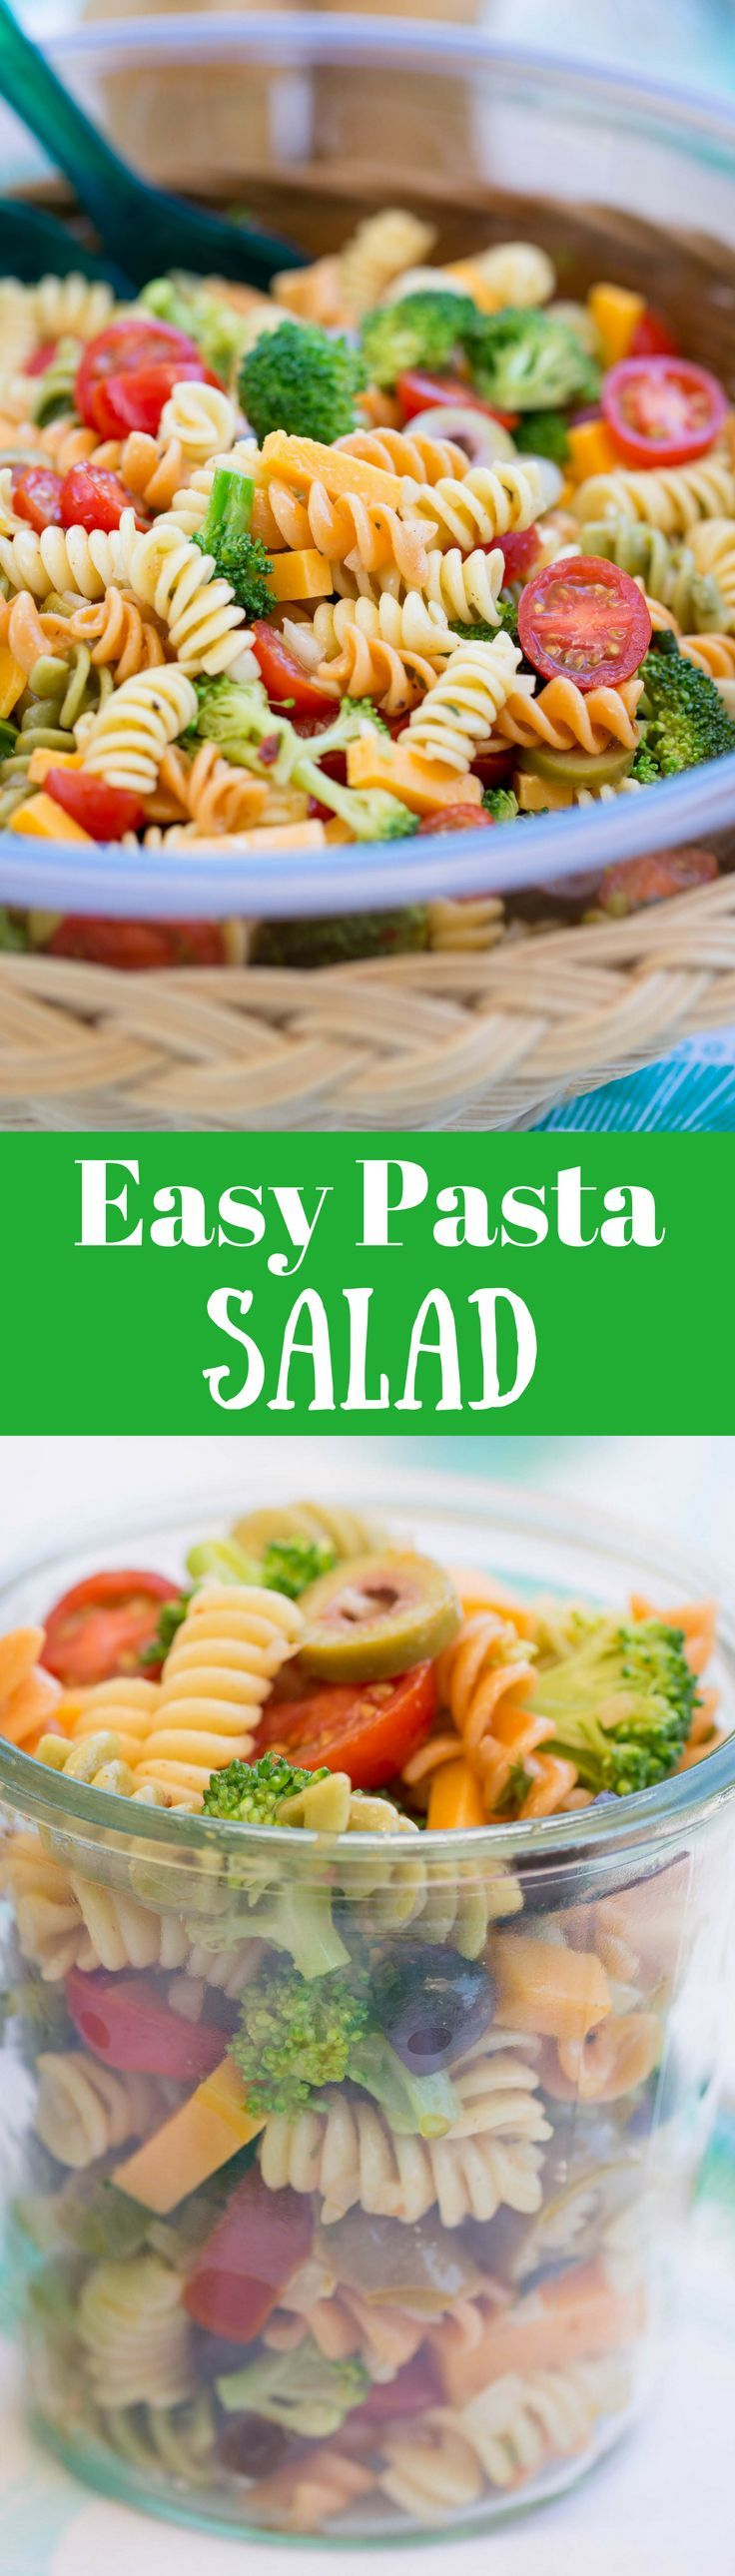 Easy Pasta Salad with Zesty Italian Dressing ~  packed with flavor and crispy fresh broccoli then marinated with a zesty Italian dressing. Leftovers are the best!   http://www.savingdessert.com     easy pasta salad   pasta salad   zesty Italian dressing   summer salad   easy salad